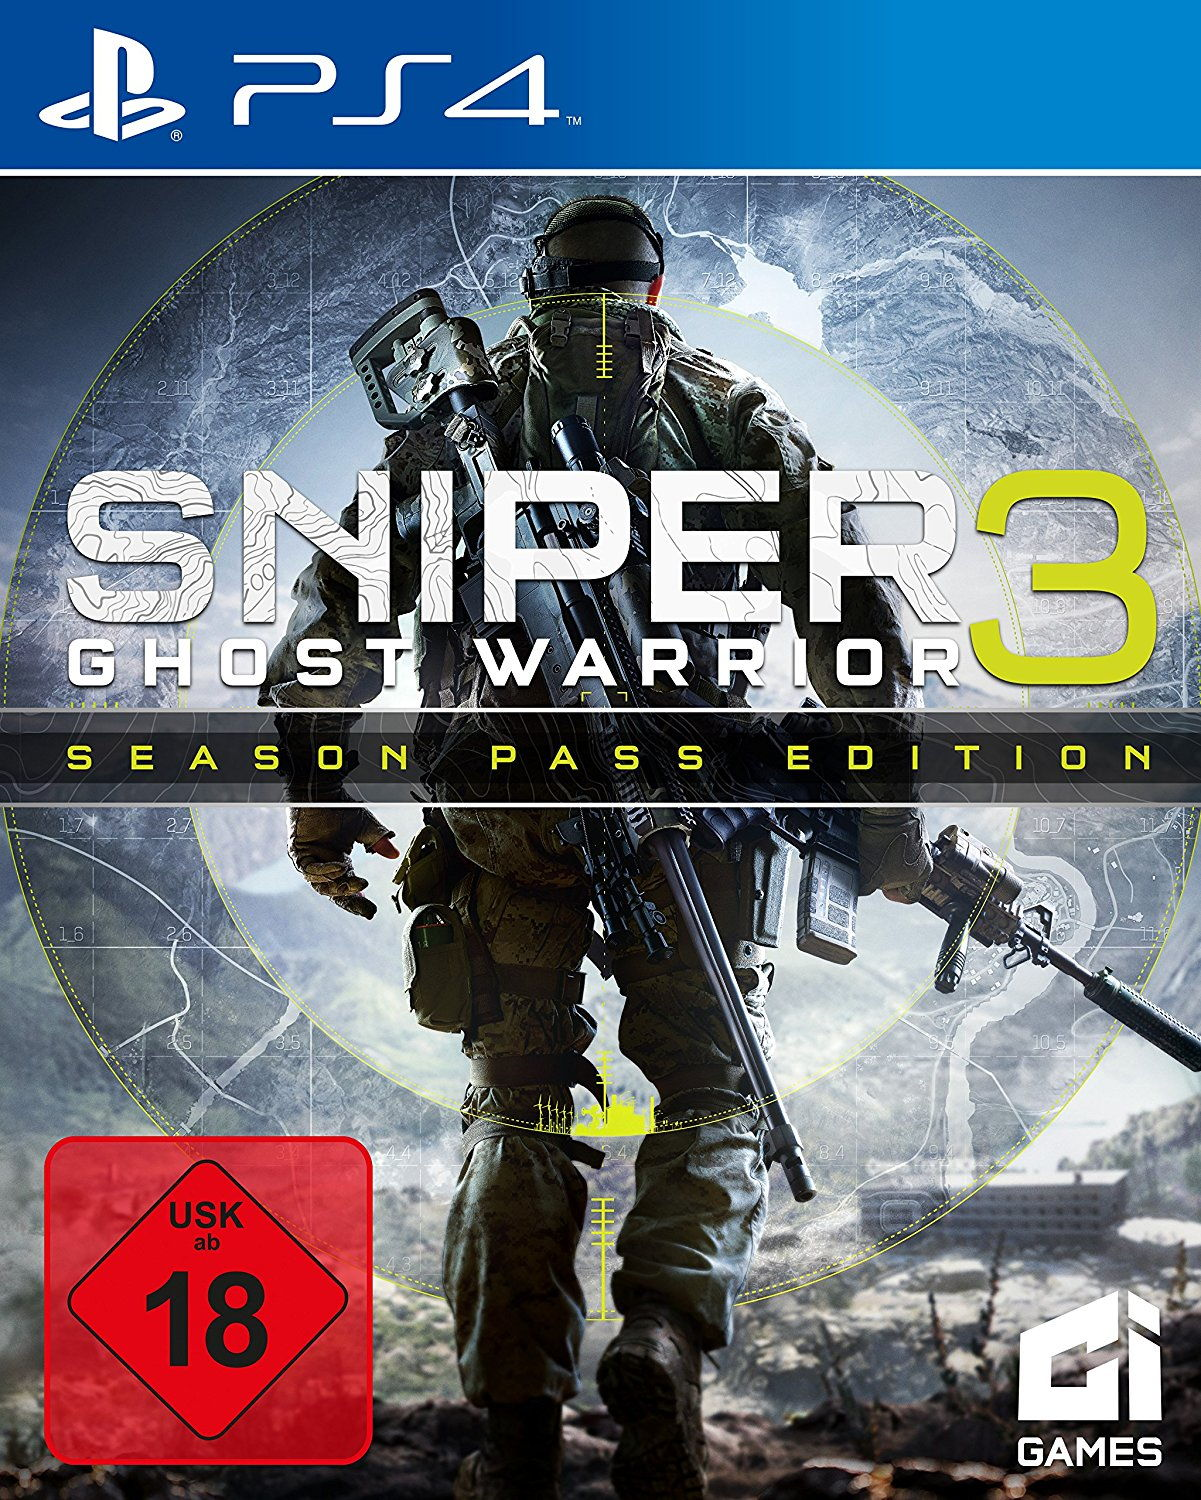 Sniper Ghost Warrior 3 - Season Pass Edition